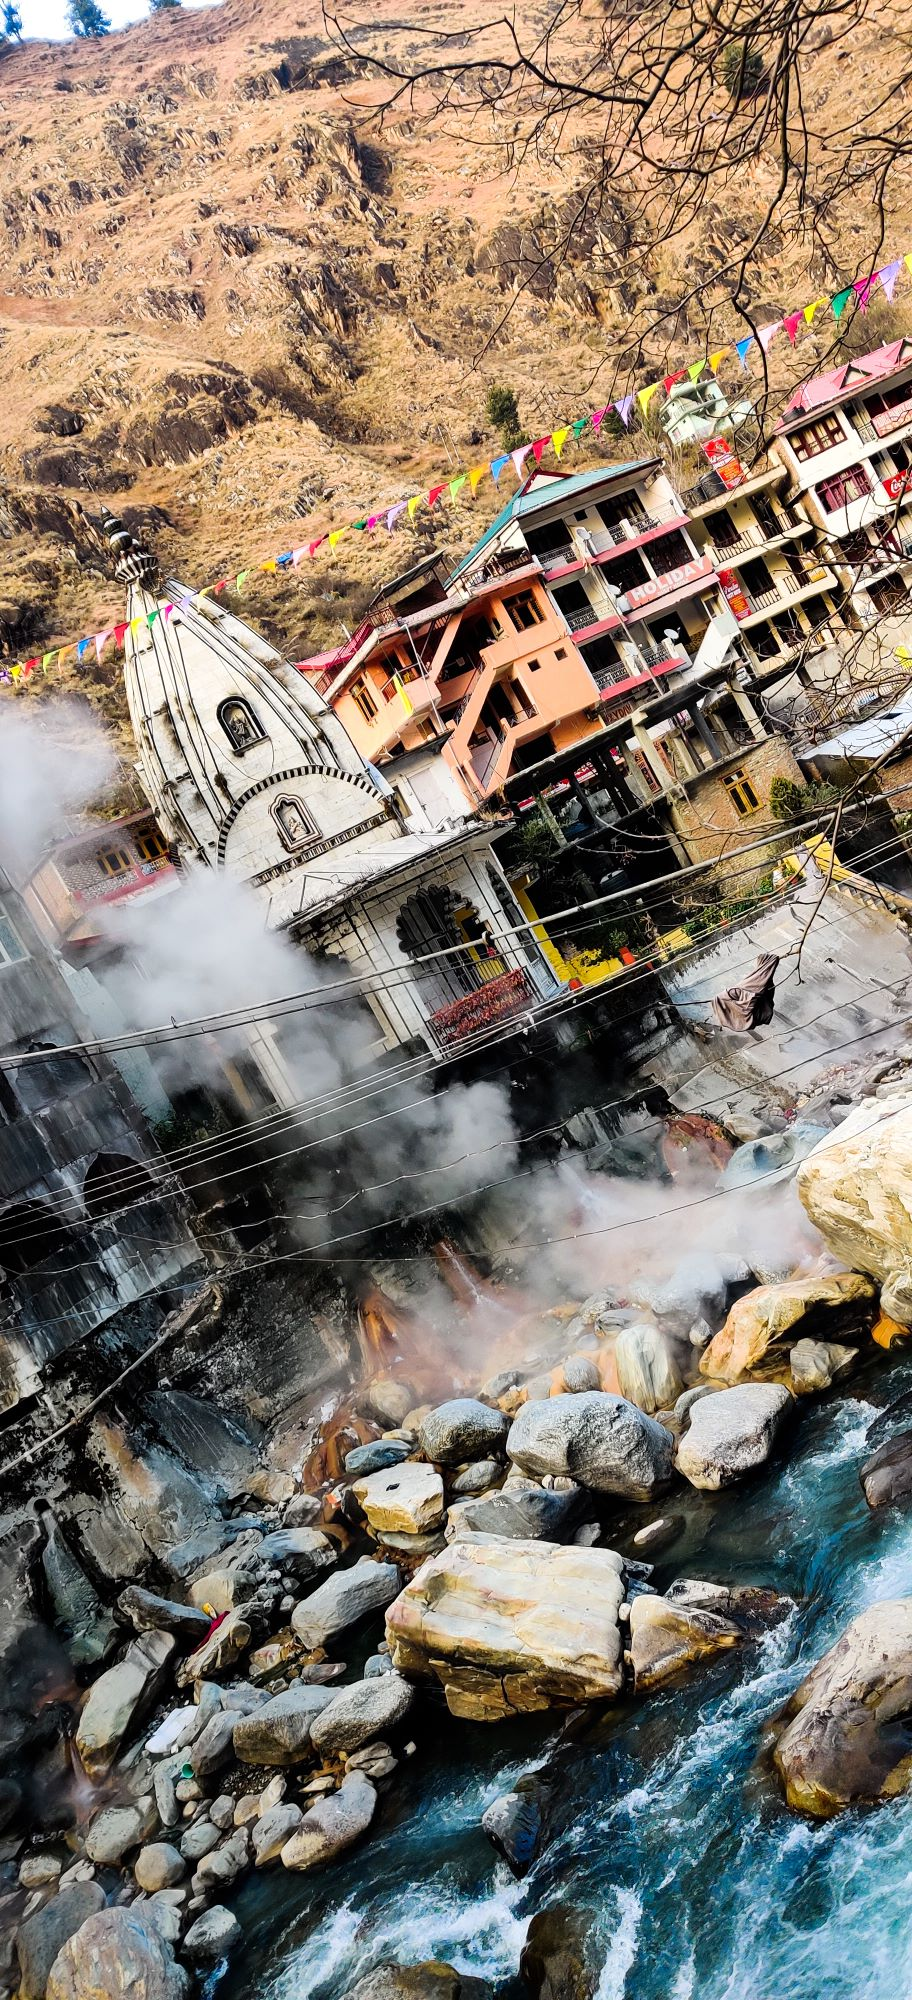 The pious place of shiv lord on the bank of river Ganga